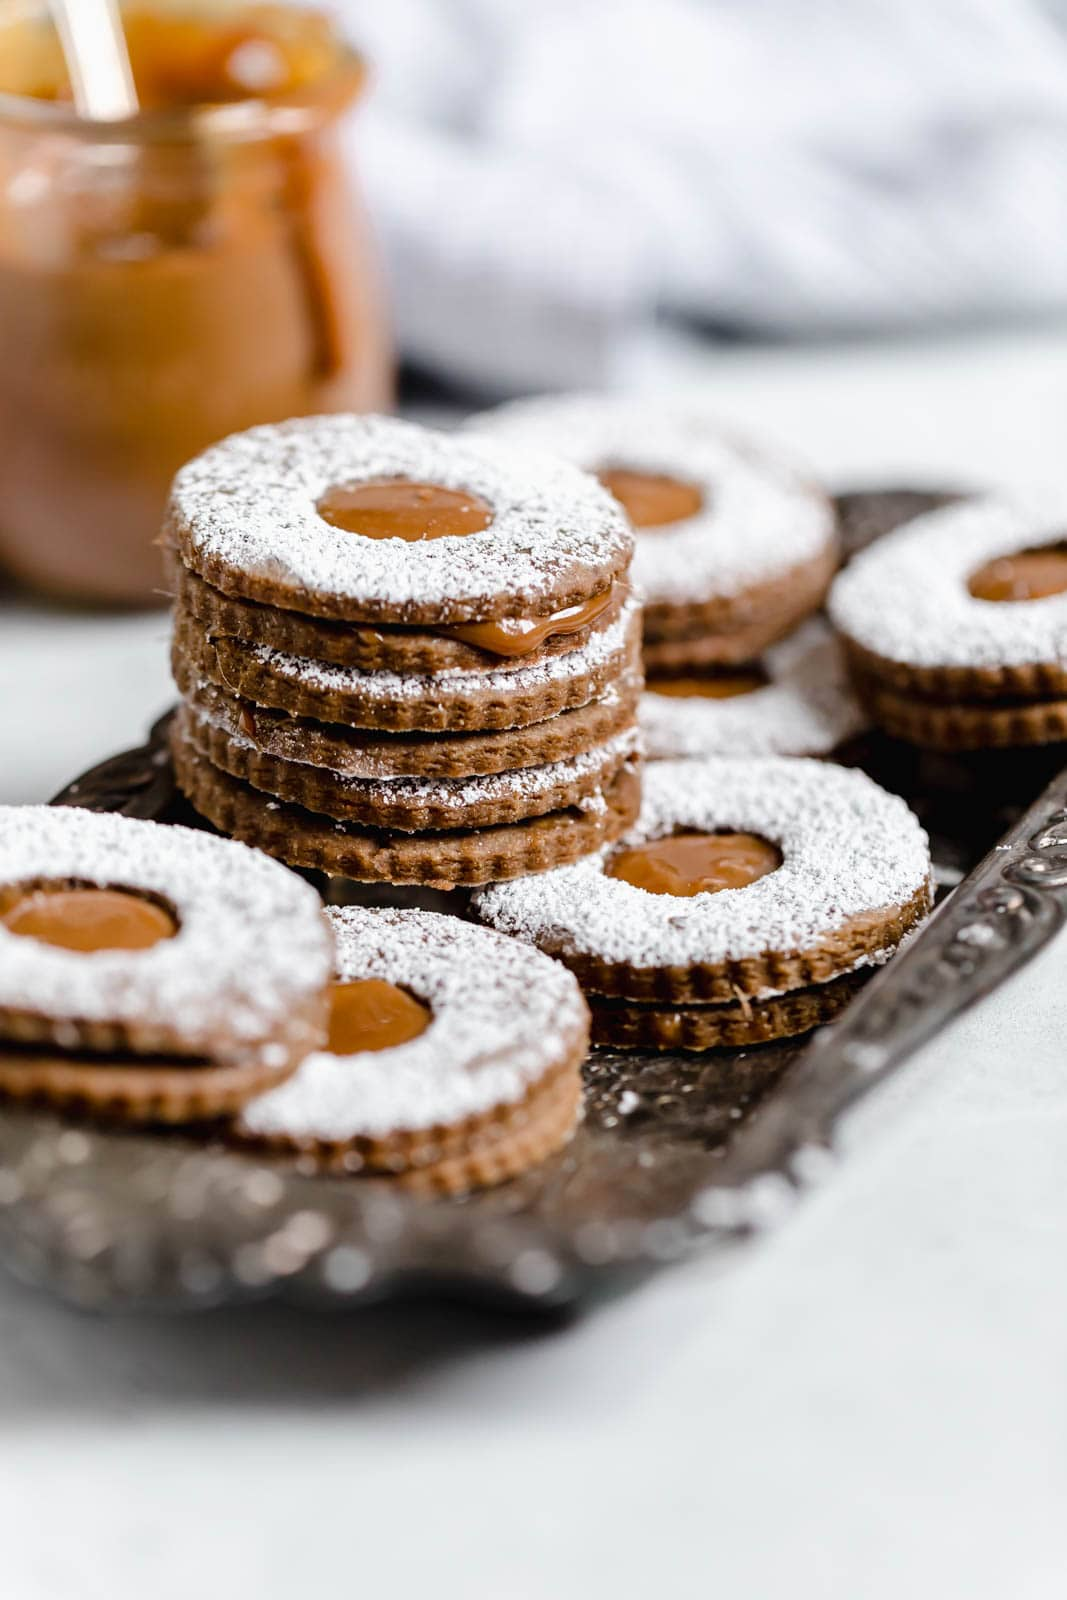 Santa, meet your new favorite cookie. Seriously obsessed with these Gingerbread Linzer Cookies with dulce de leche centers.